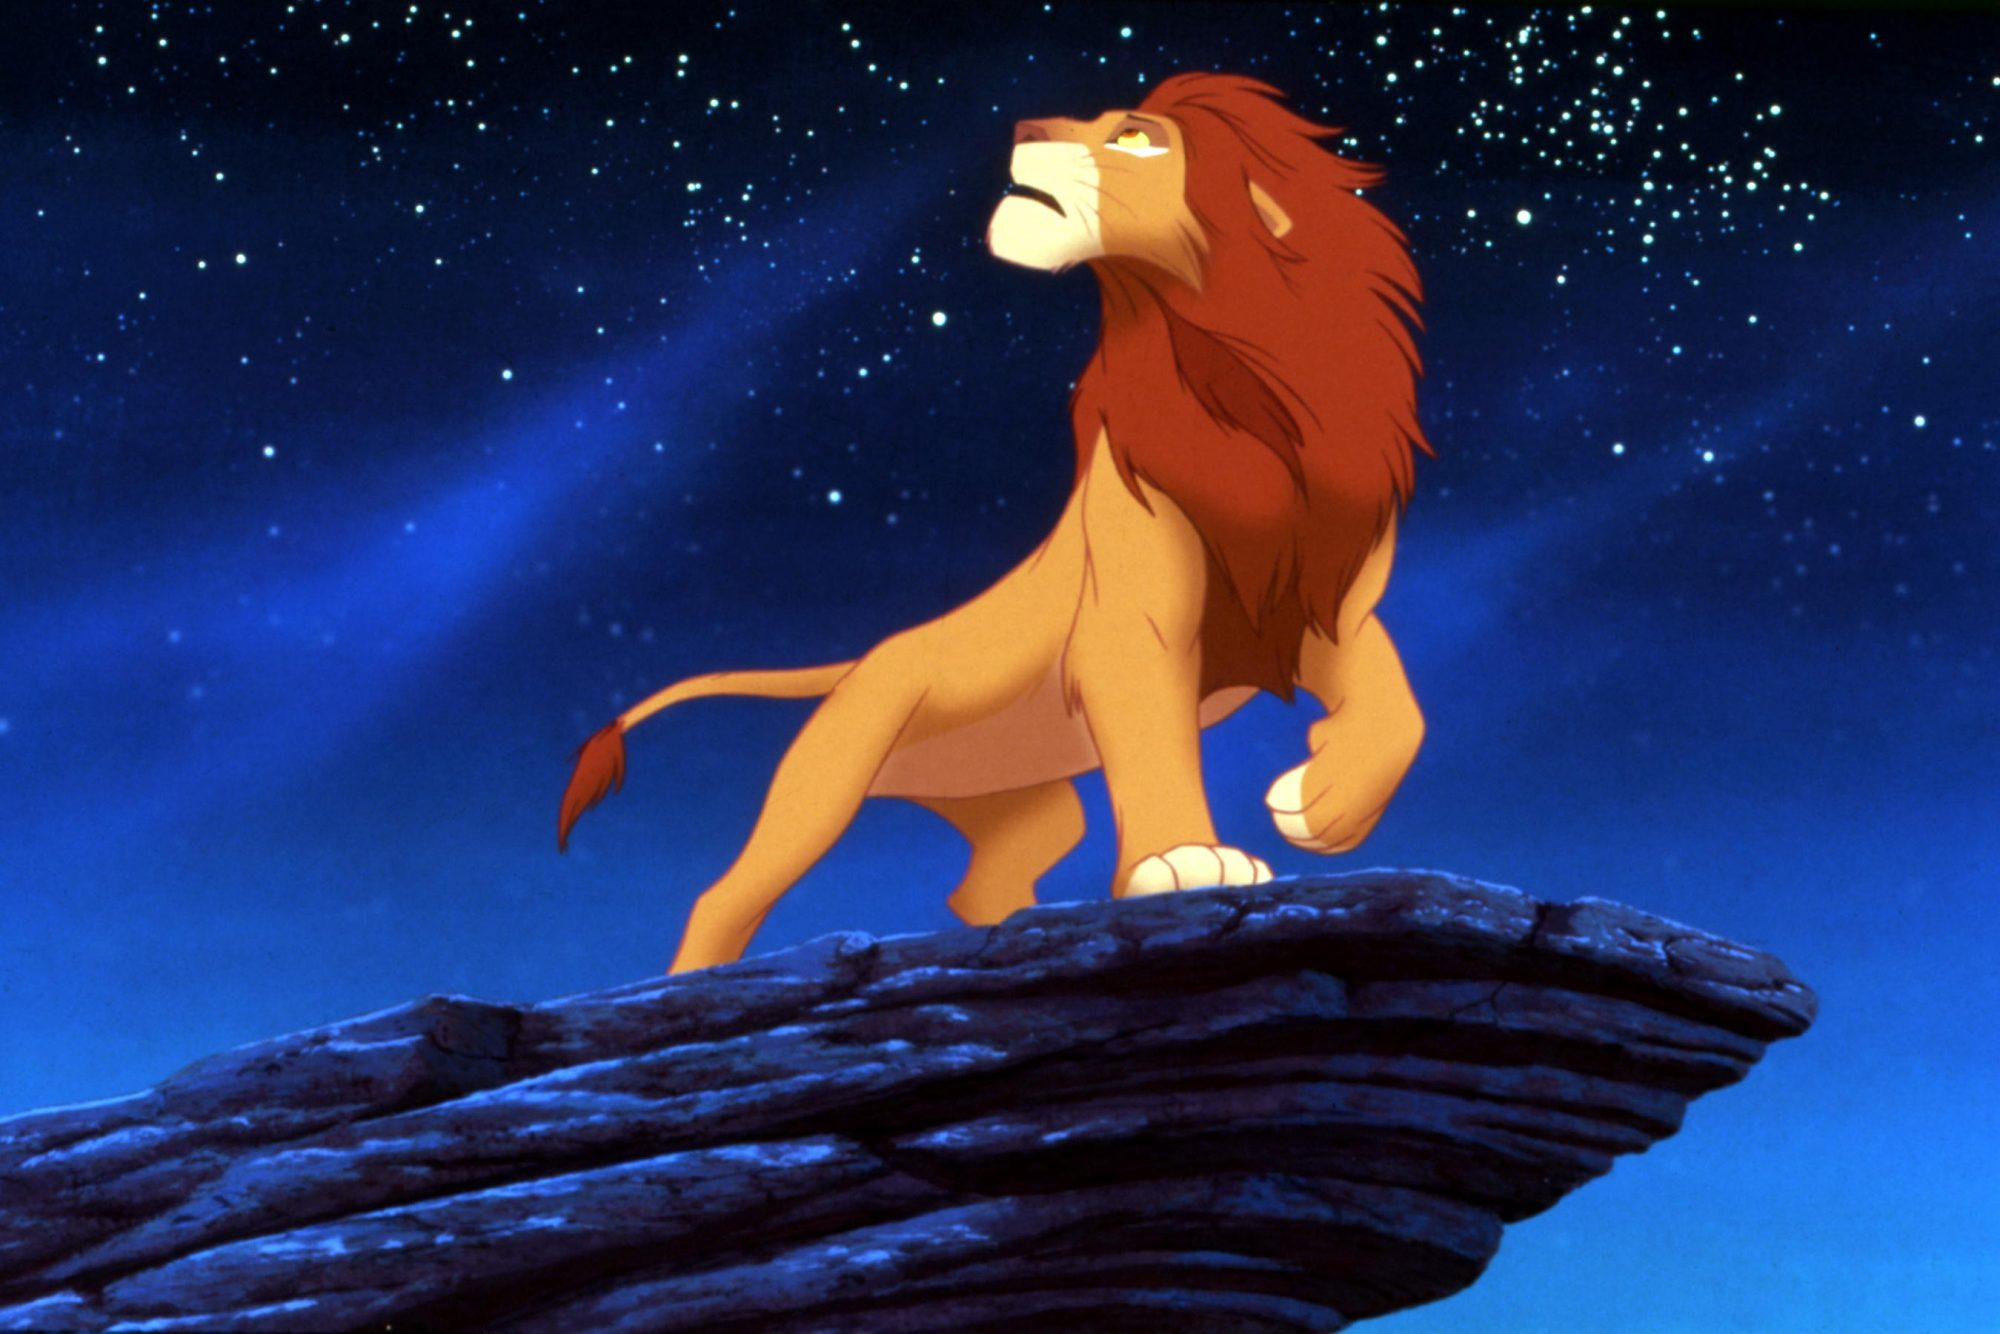 THE LION KING, Simba, 1994, (c)Buena Vista Pictures/courtesy Everett Collection